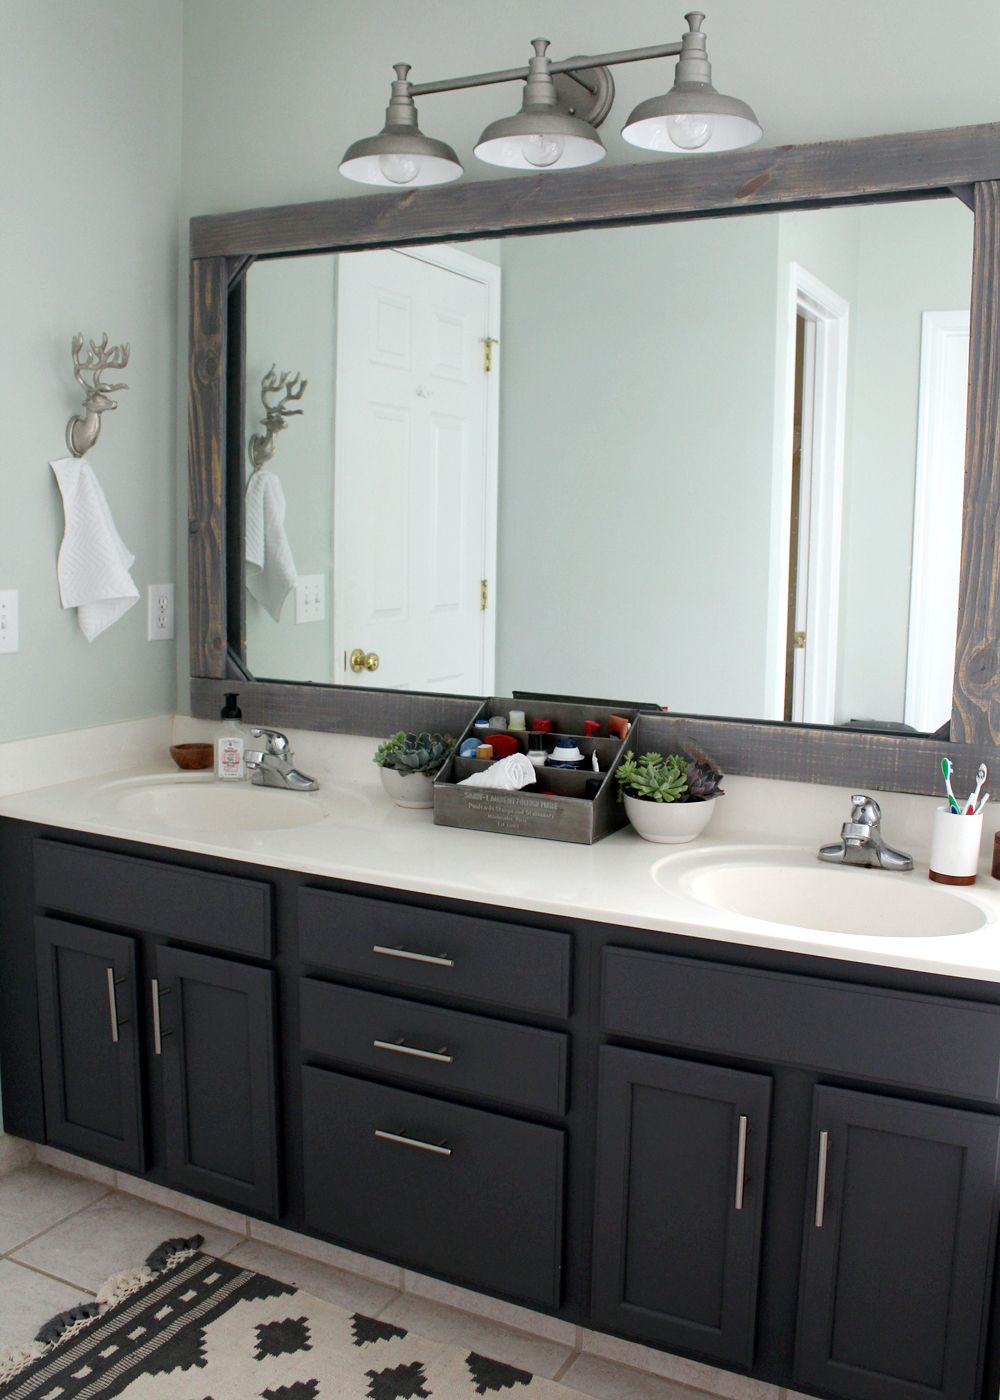 300 master bathroom remodel bloggers 39 best diy ideas pinterest bathroom home and for Remodel a bathroom on a budget